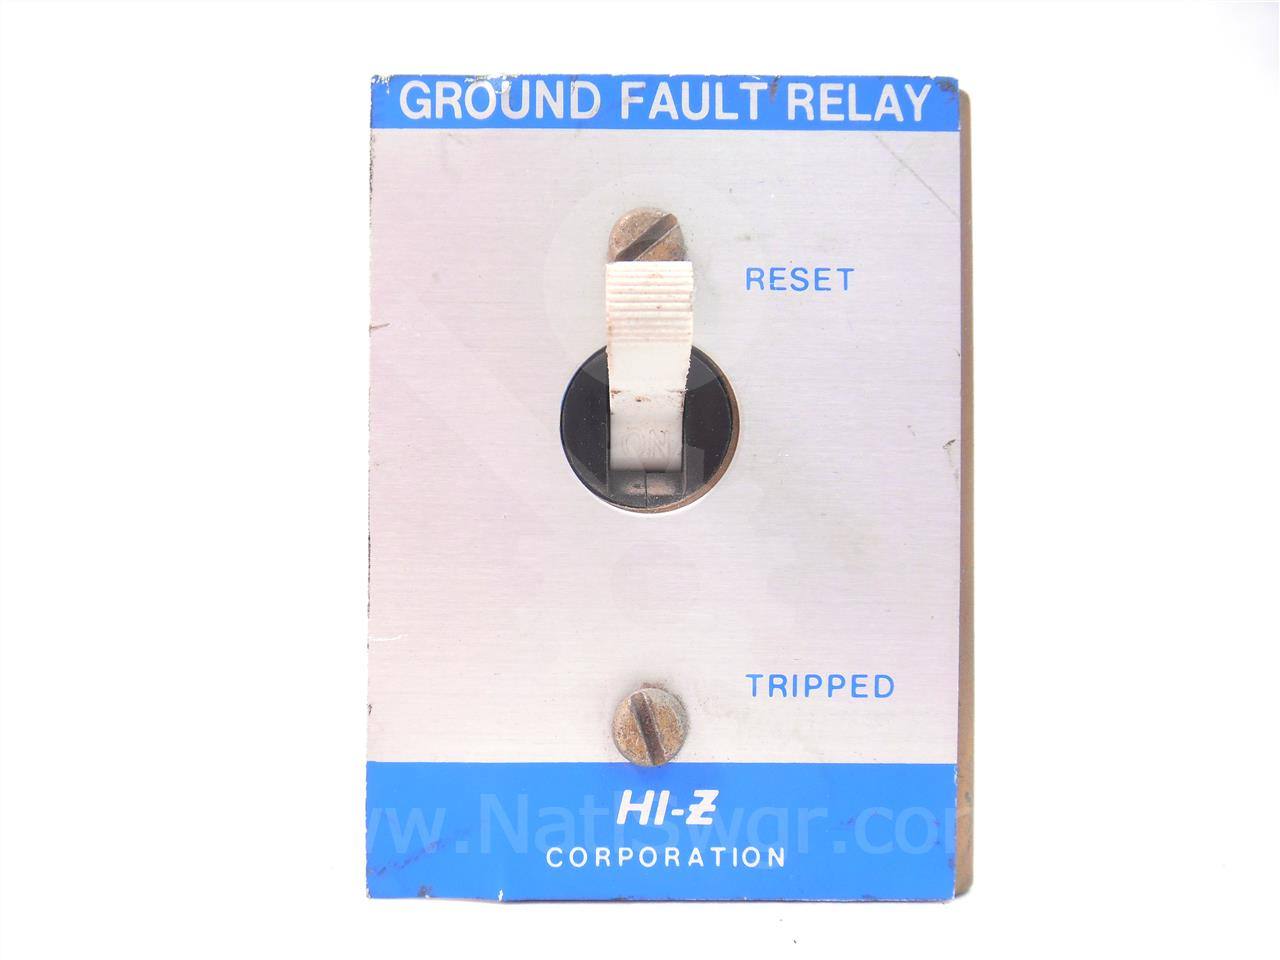 AZM31 AB HI-Z CORP GROUND FAULT RELAY 125VDC, 5-10A